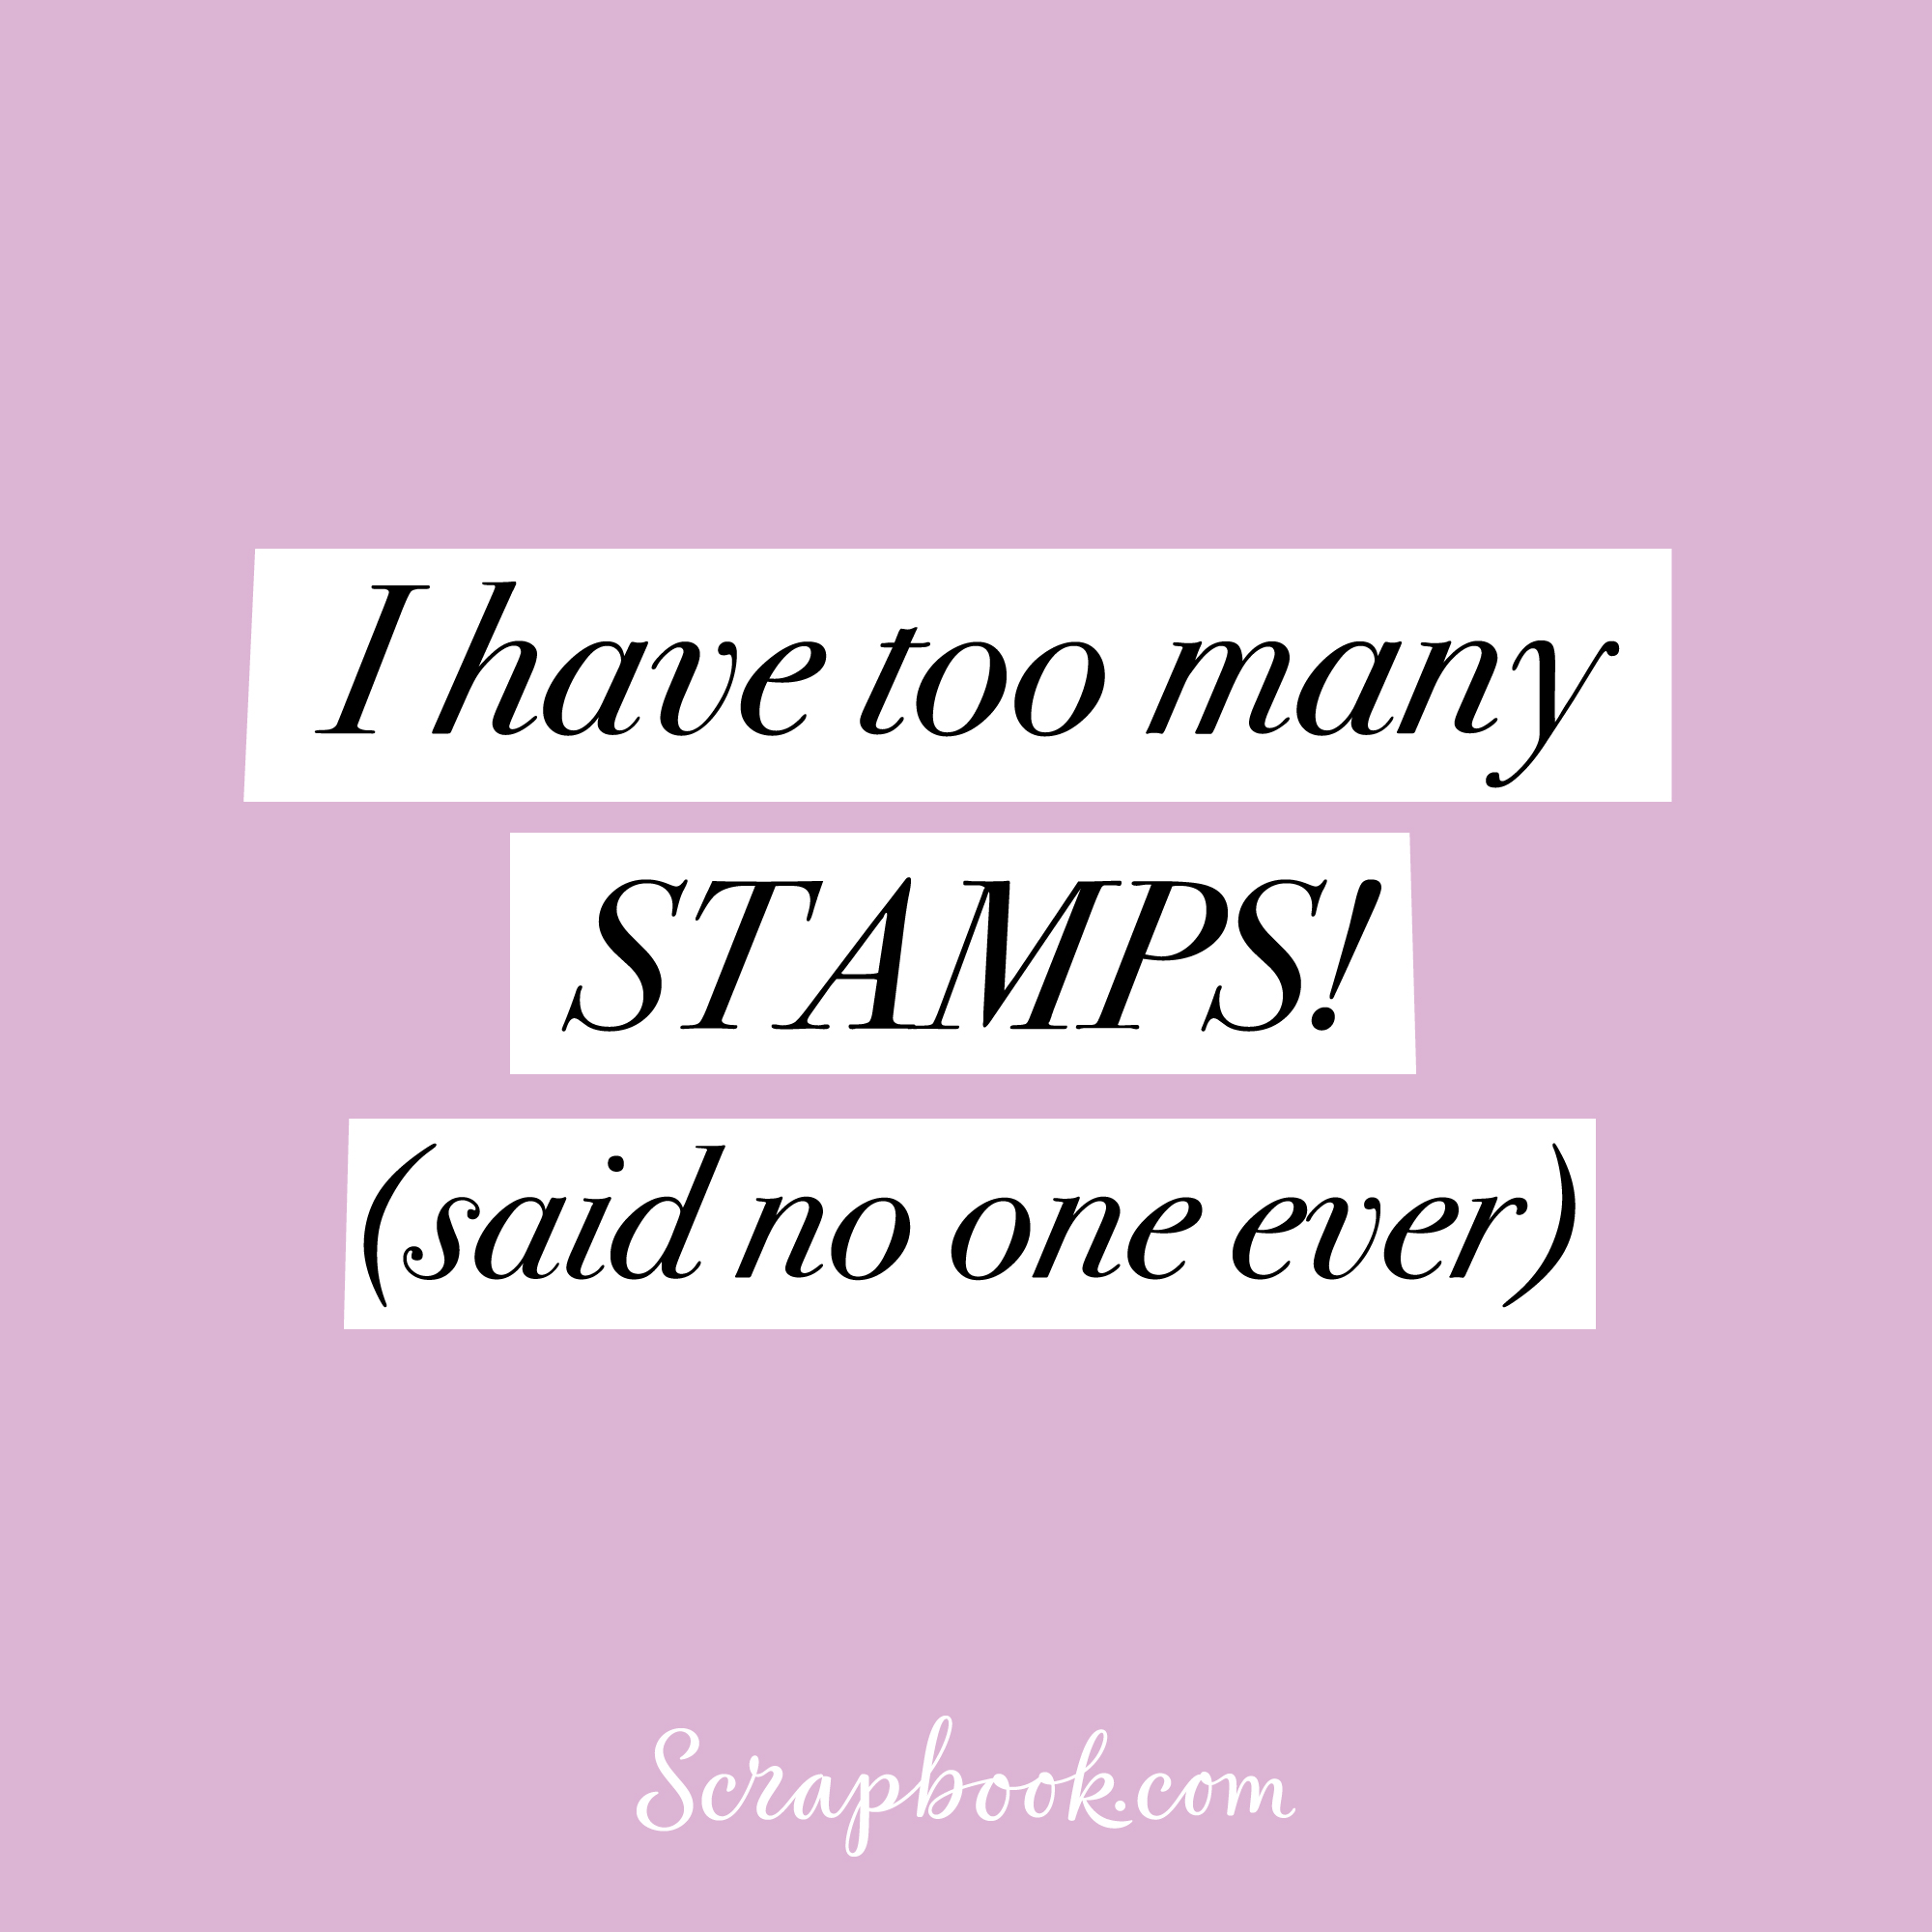 I have too many STAMPS! (said no one ever)